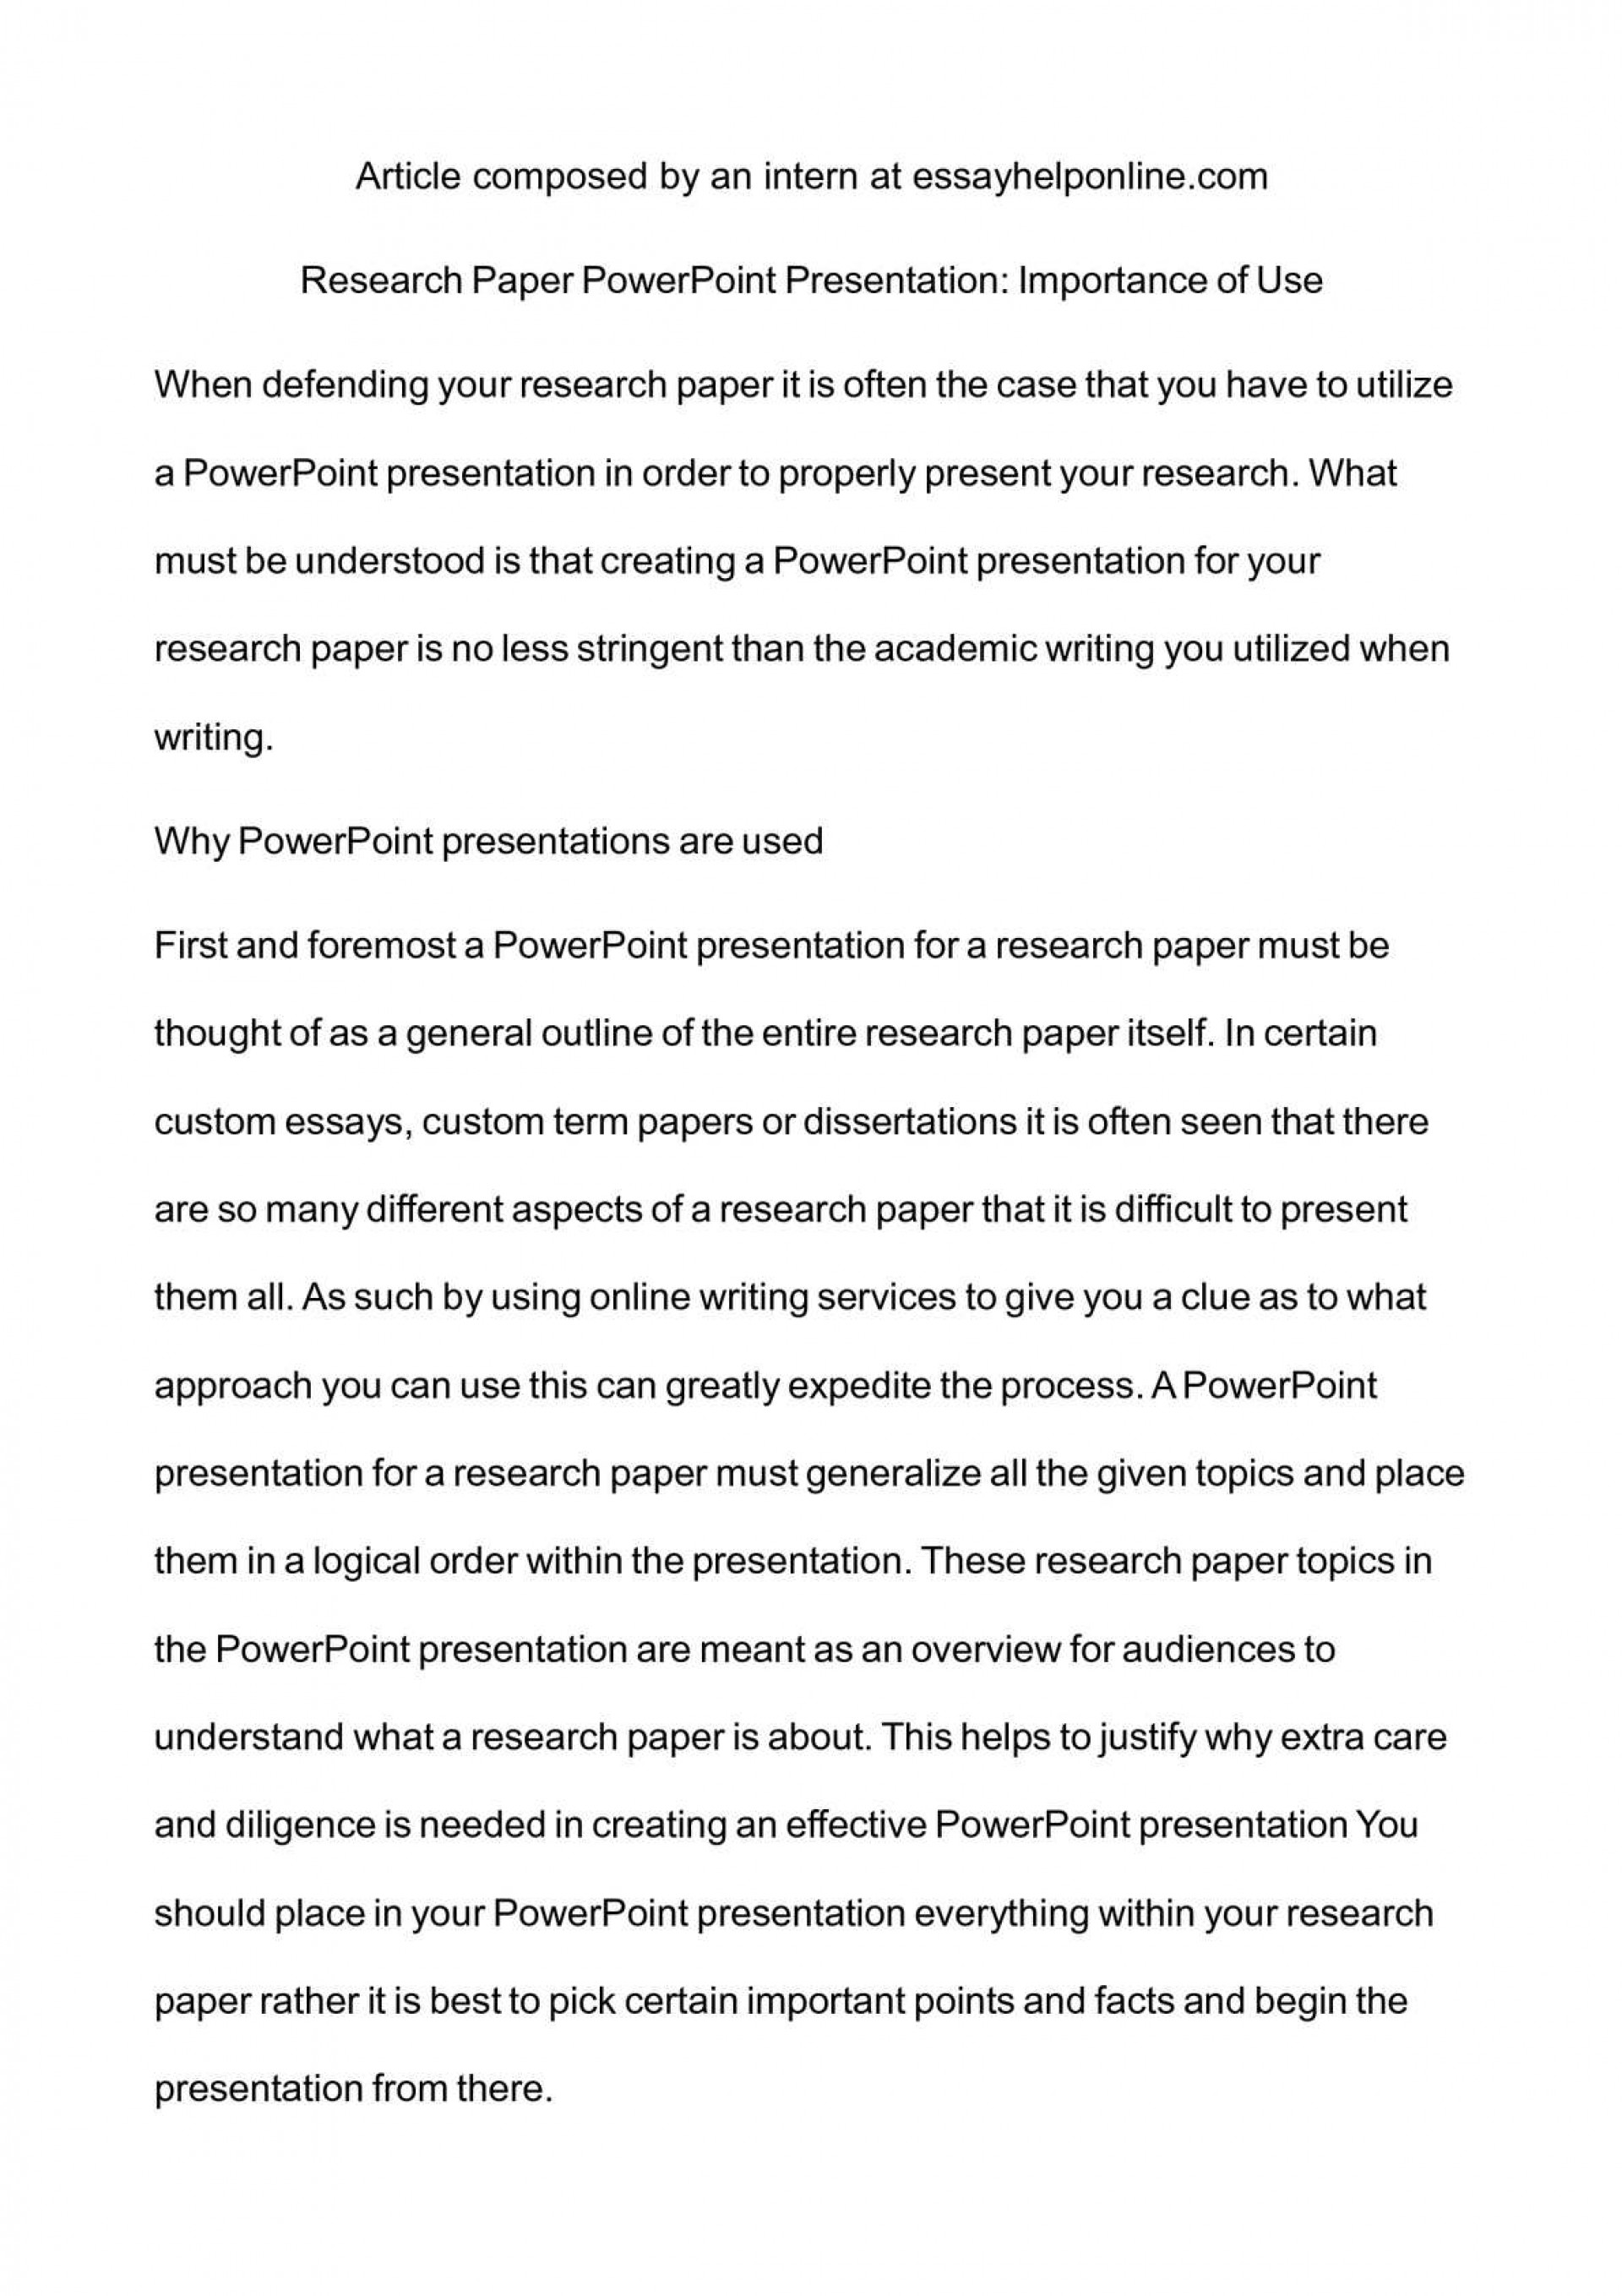 004 How To Research Paper Ppt Outstanding Publish Write Abstract For Prepare 1920